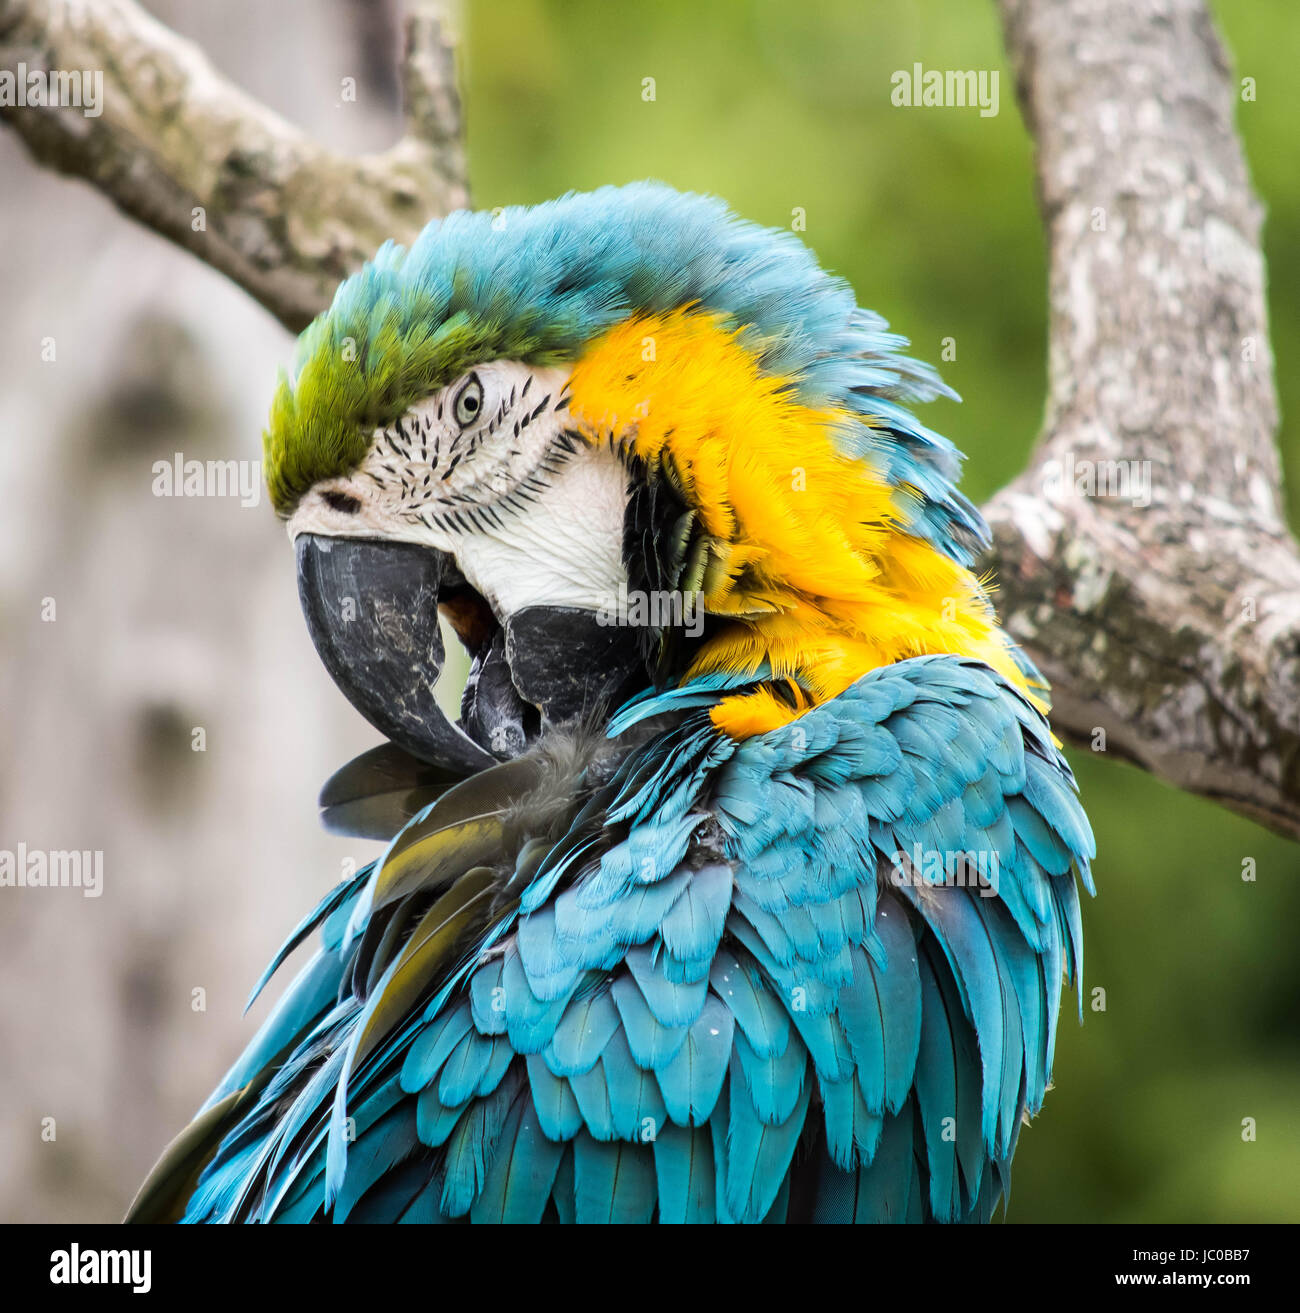 Blue and Yellow Macaw at Cotswold Wildlife Park in Burford, Oxfordshire, UK - Stock Image